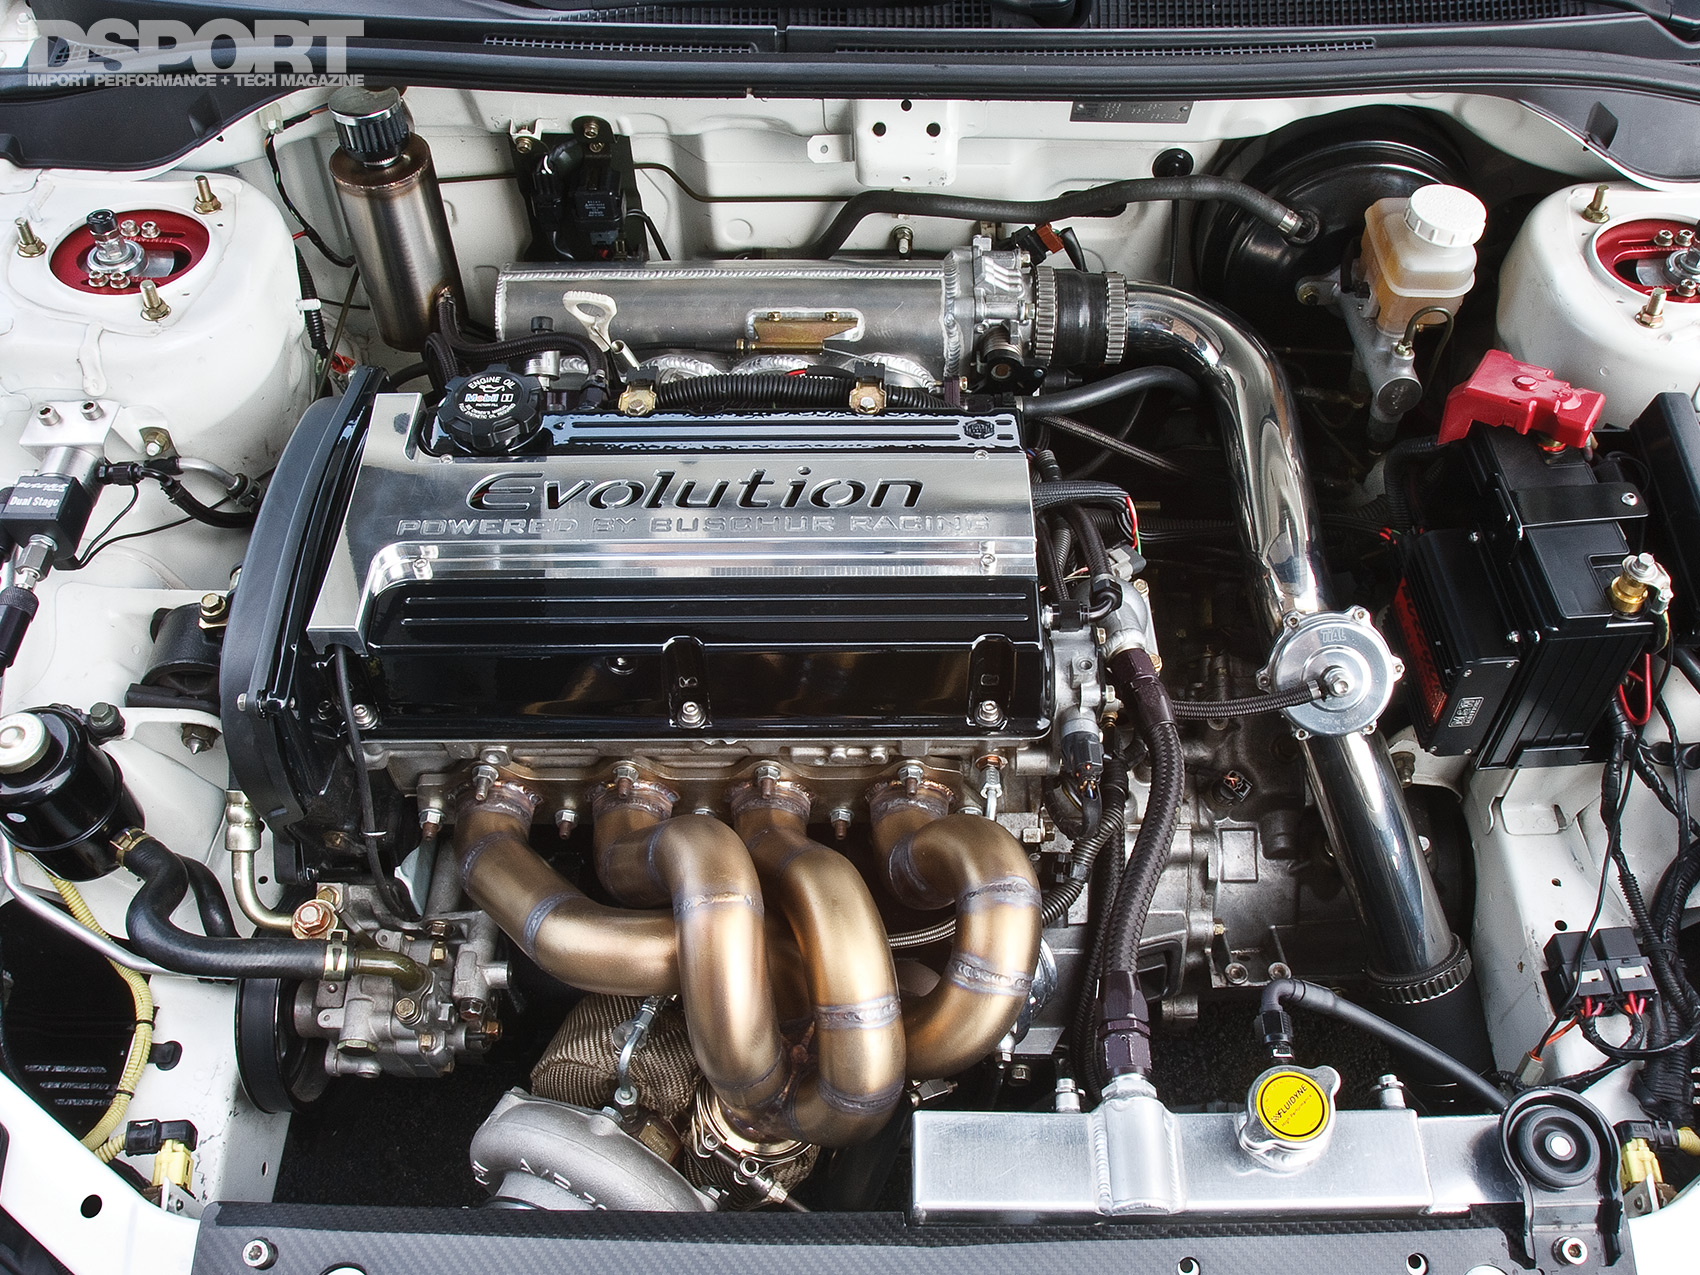 712 whp Demo Car Exemplifies Buschur Racing Philosophy While